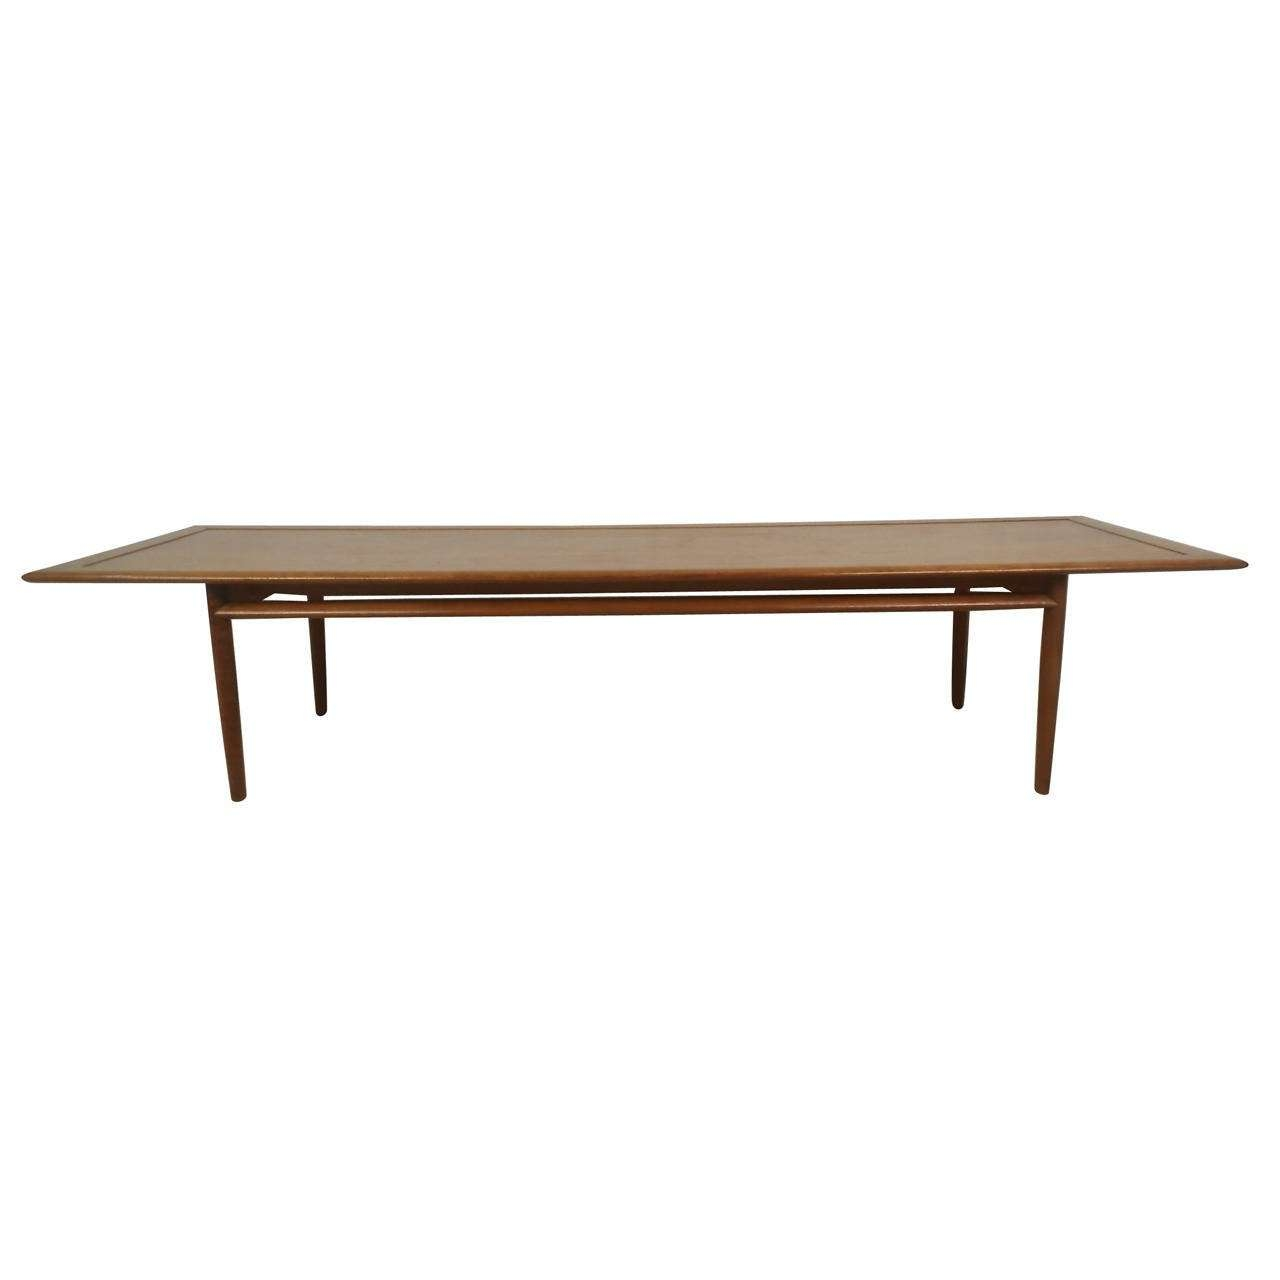 Long Coffee Table From Drexel Parallel Series For Sale At 1stdibs Inside Current Long Coffee Tables (View 2 of 20)